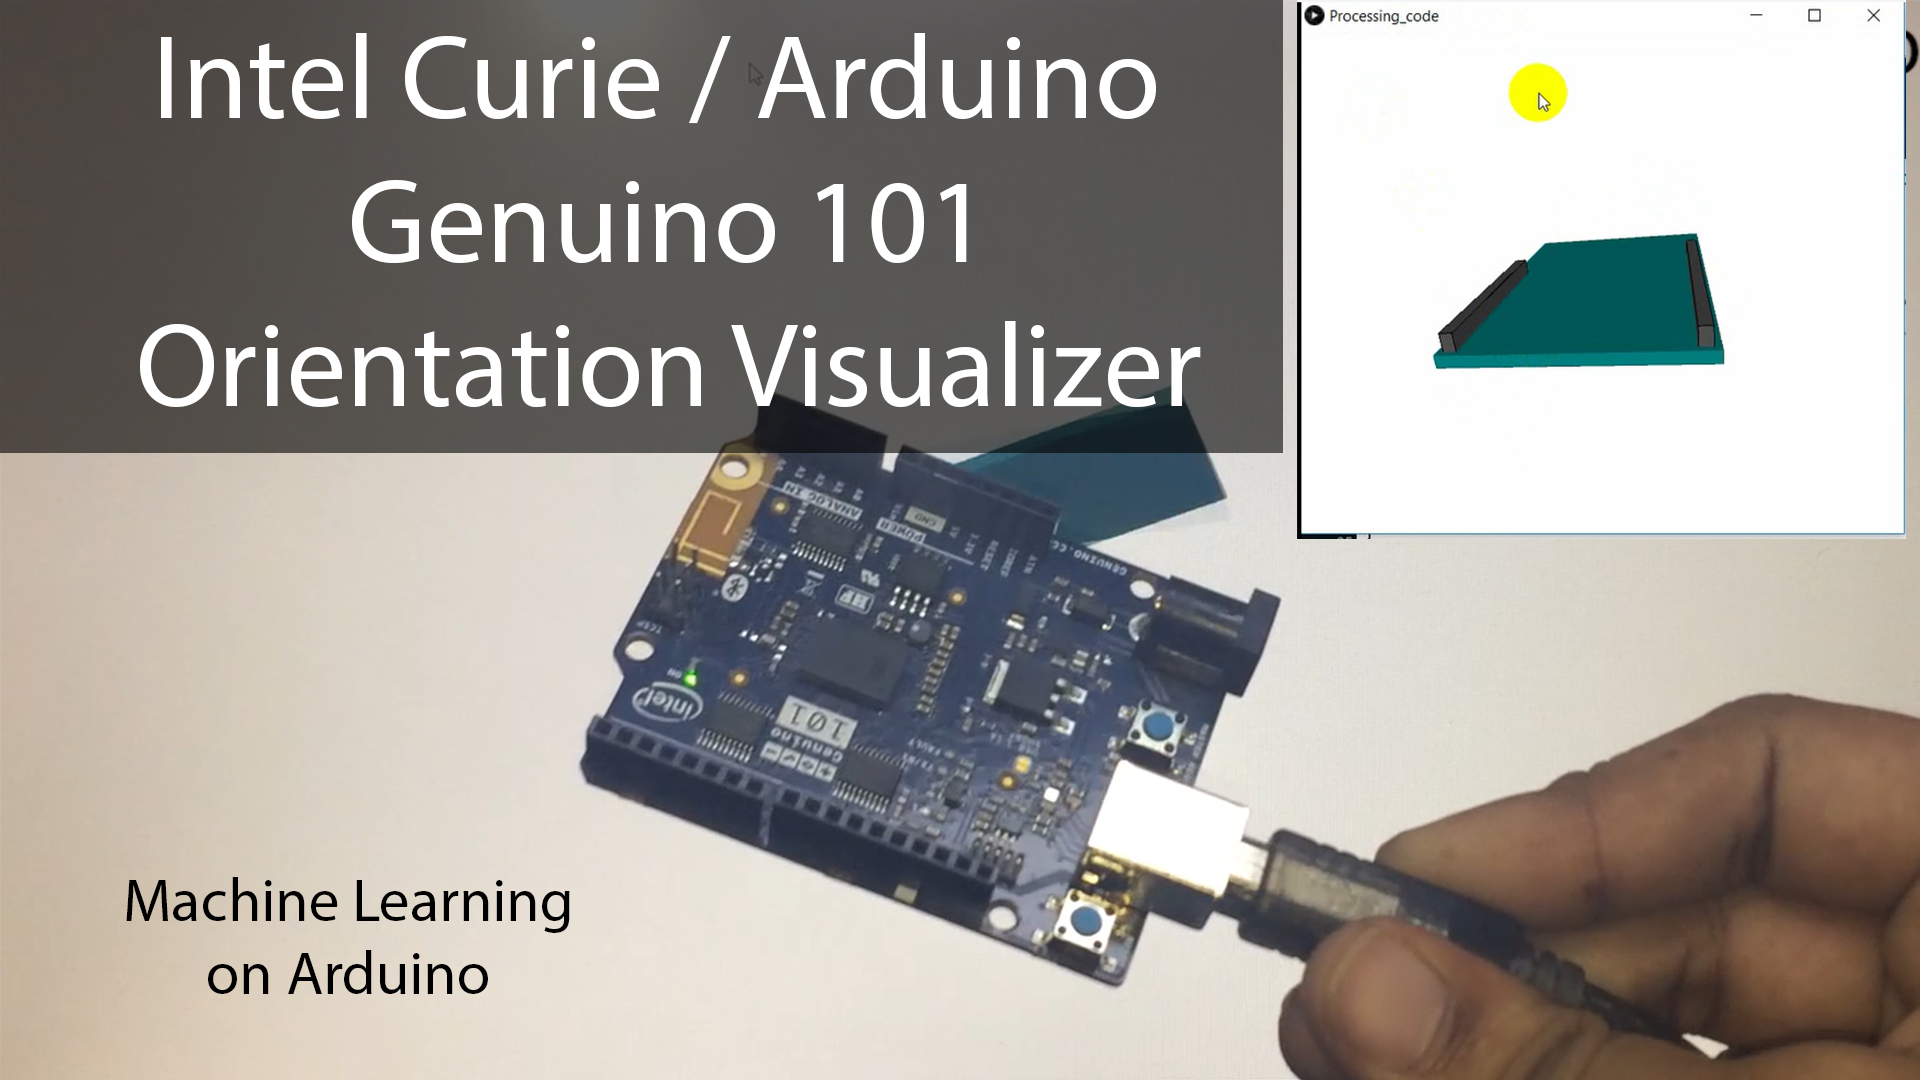 Arduino Genuino 101 / Intel Curie orientation visualizer